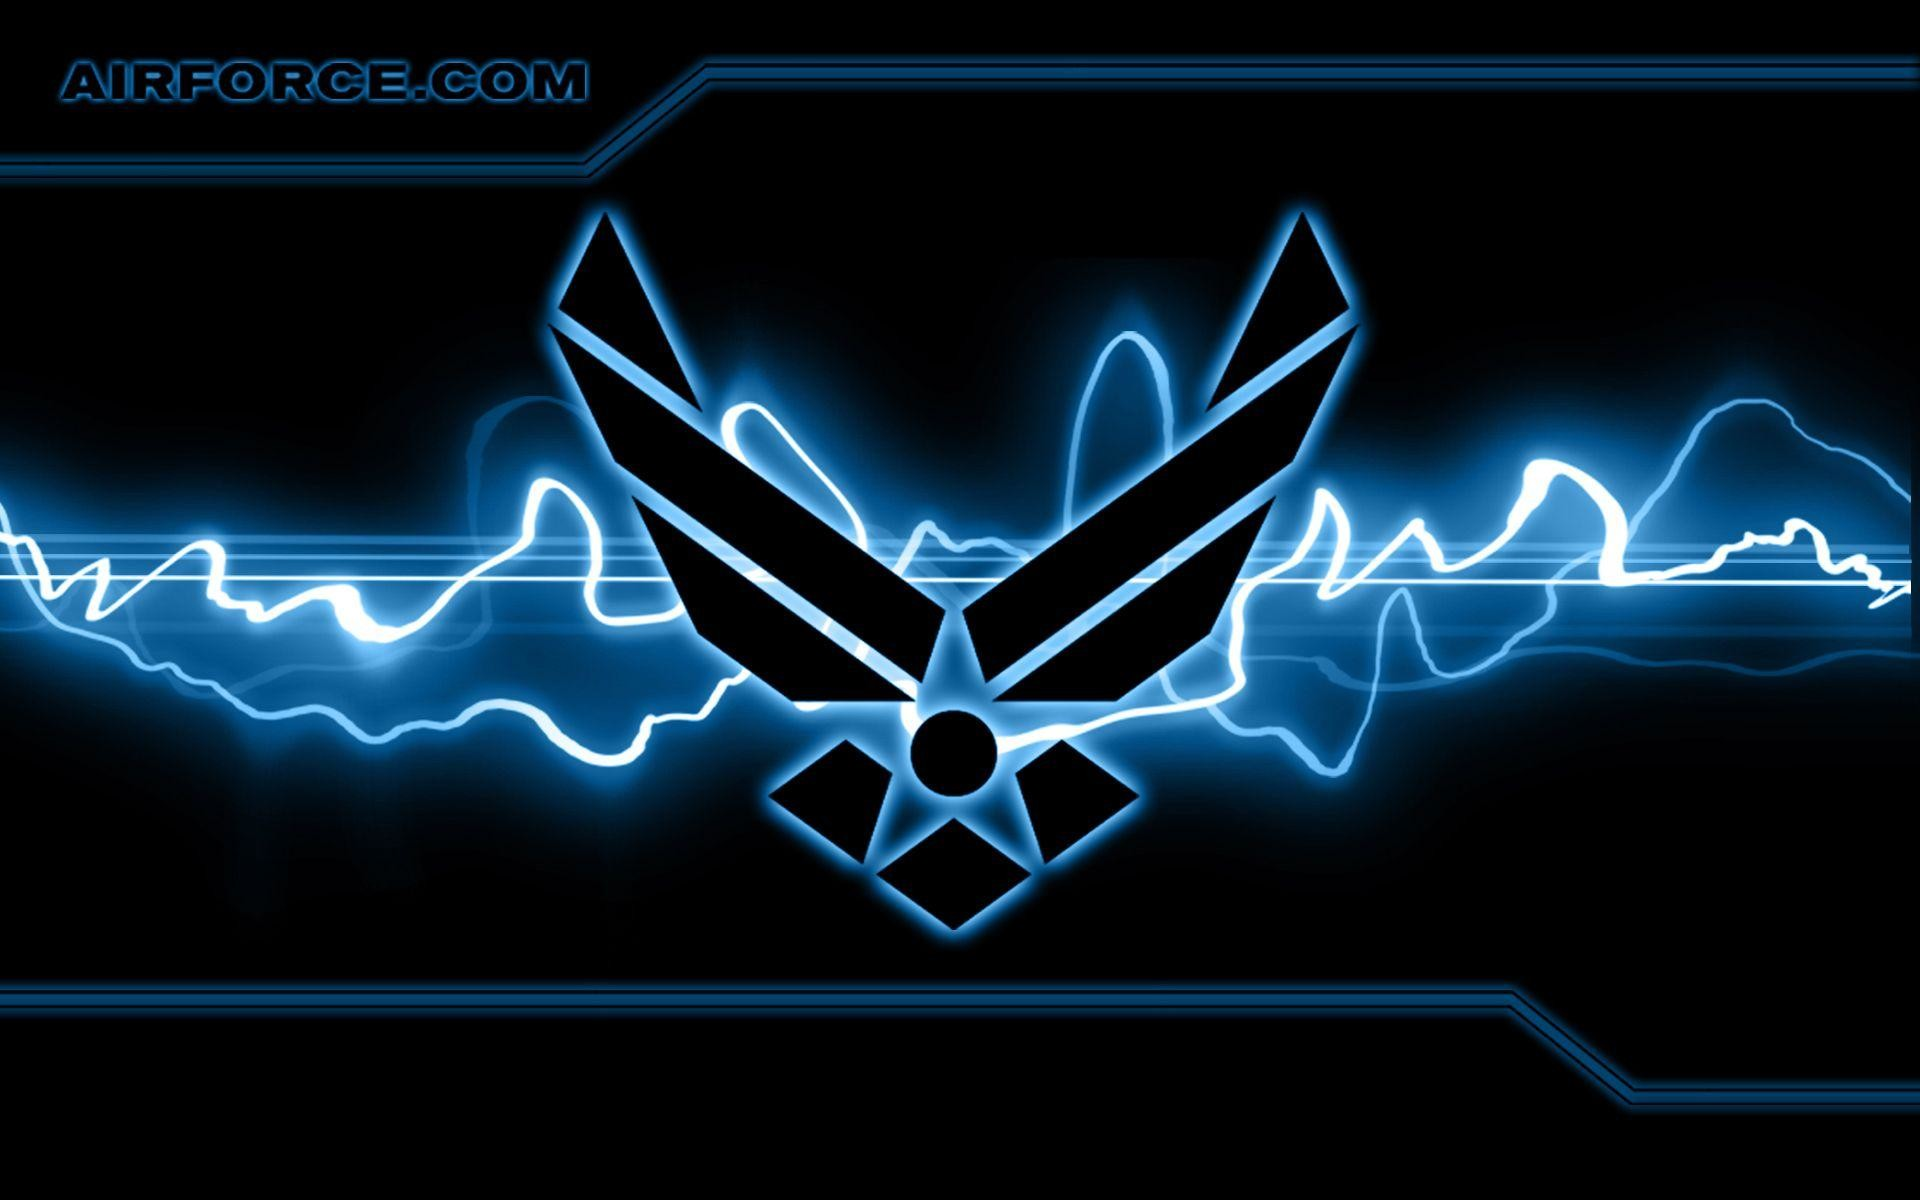 Air force logo wallpaper 56 pictures air force logo wallpaper voltagebd Images